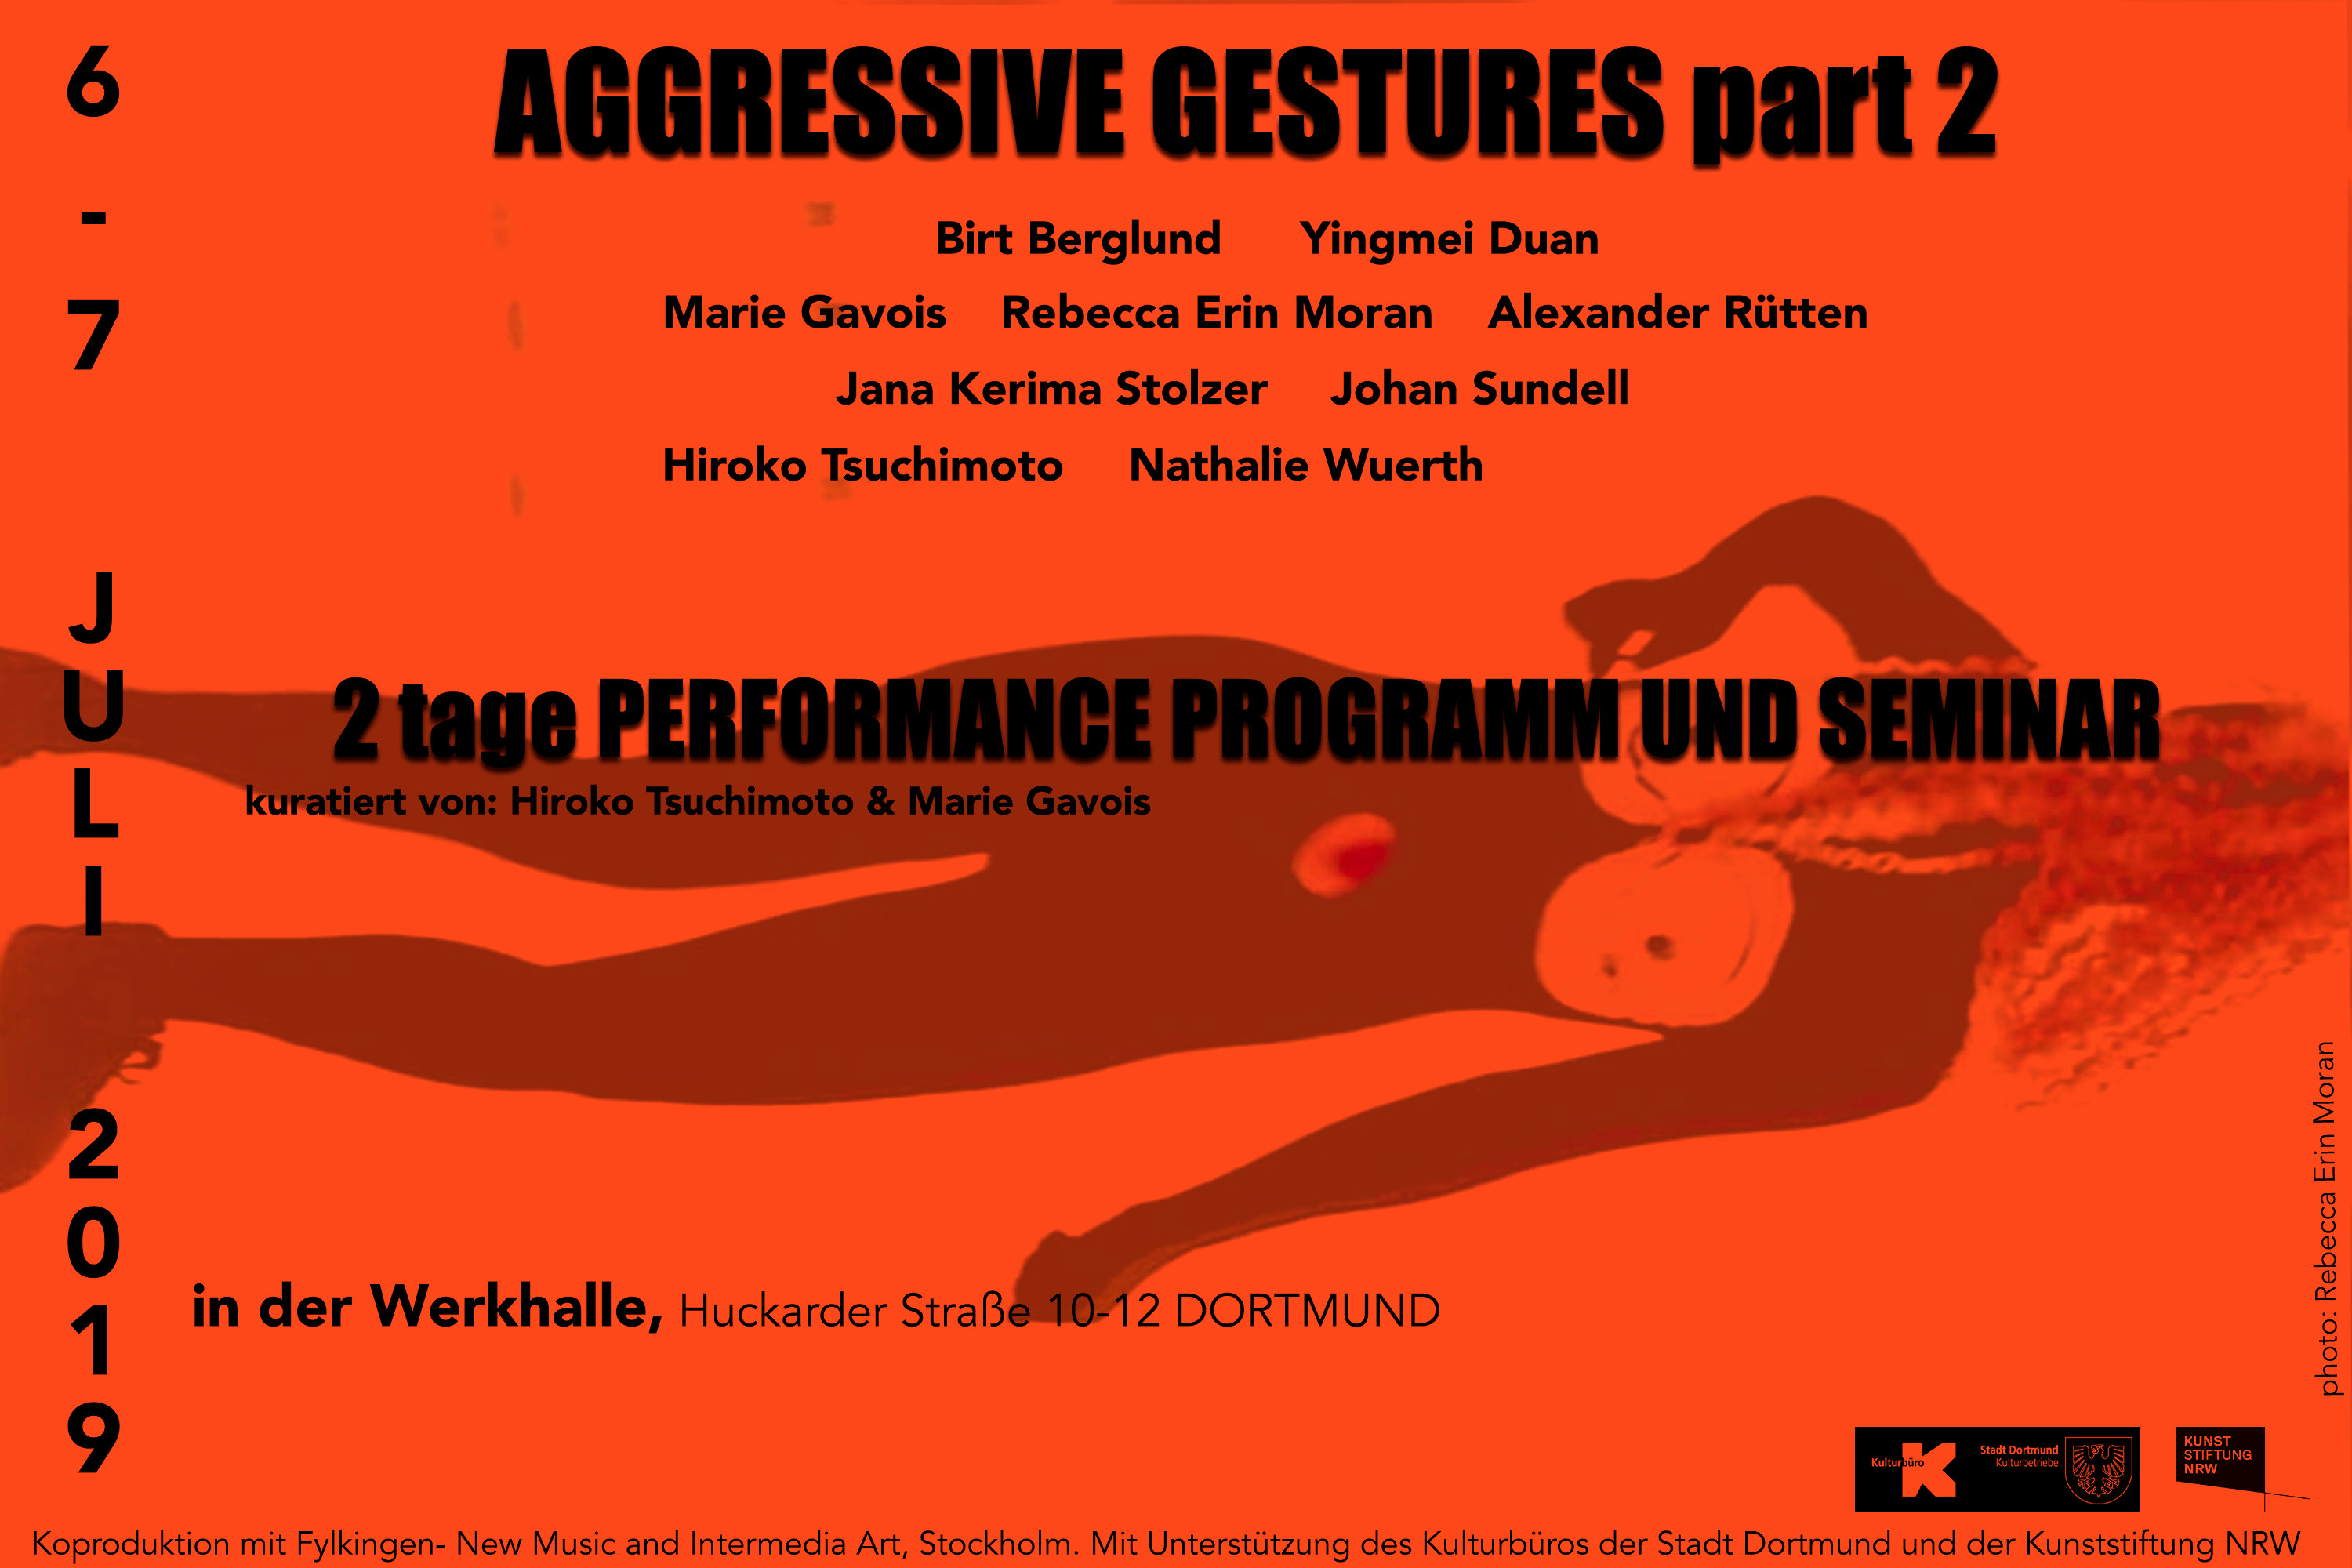 aggressive flyer moran-facebook  korrekted 2 orange-red